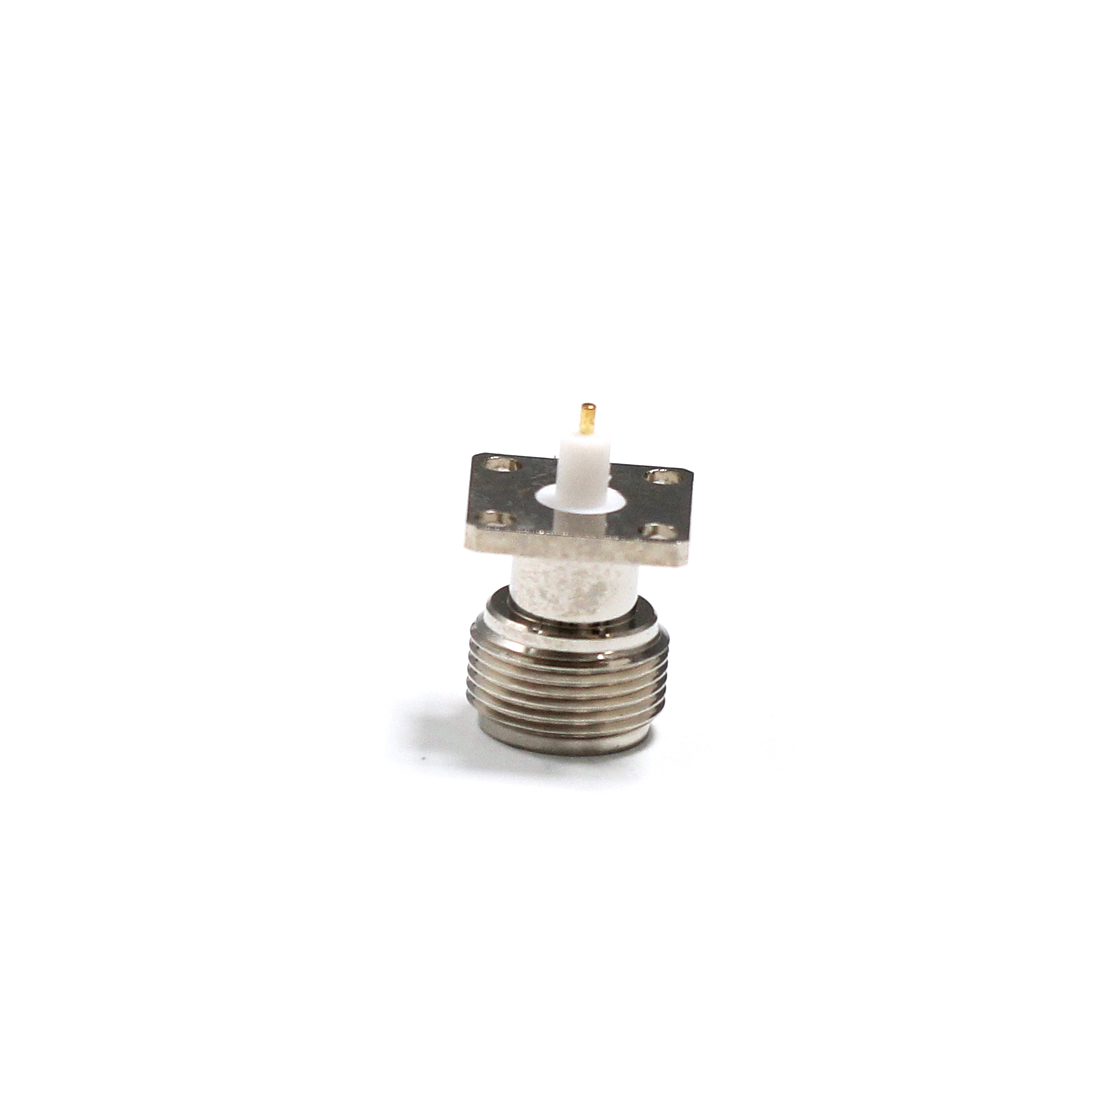 1pc NEW  N Female Jack  RF Coax Adapter convertor Connector  solder post   4-hole panel mount   Insulator Long 4mm  Nickelplated